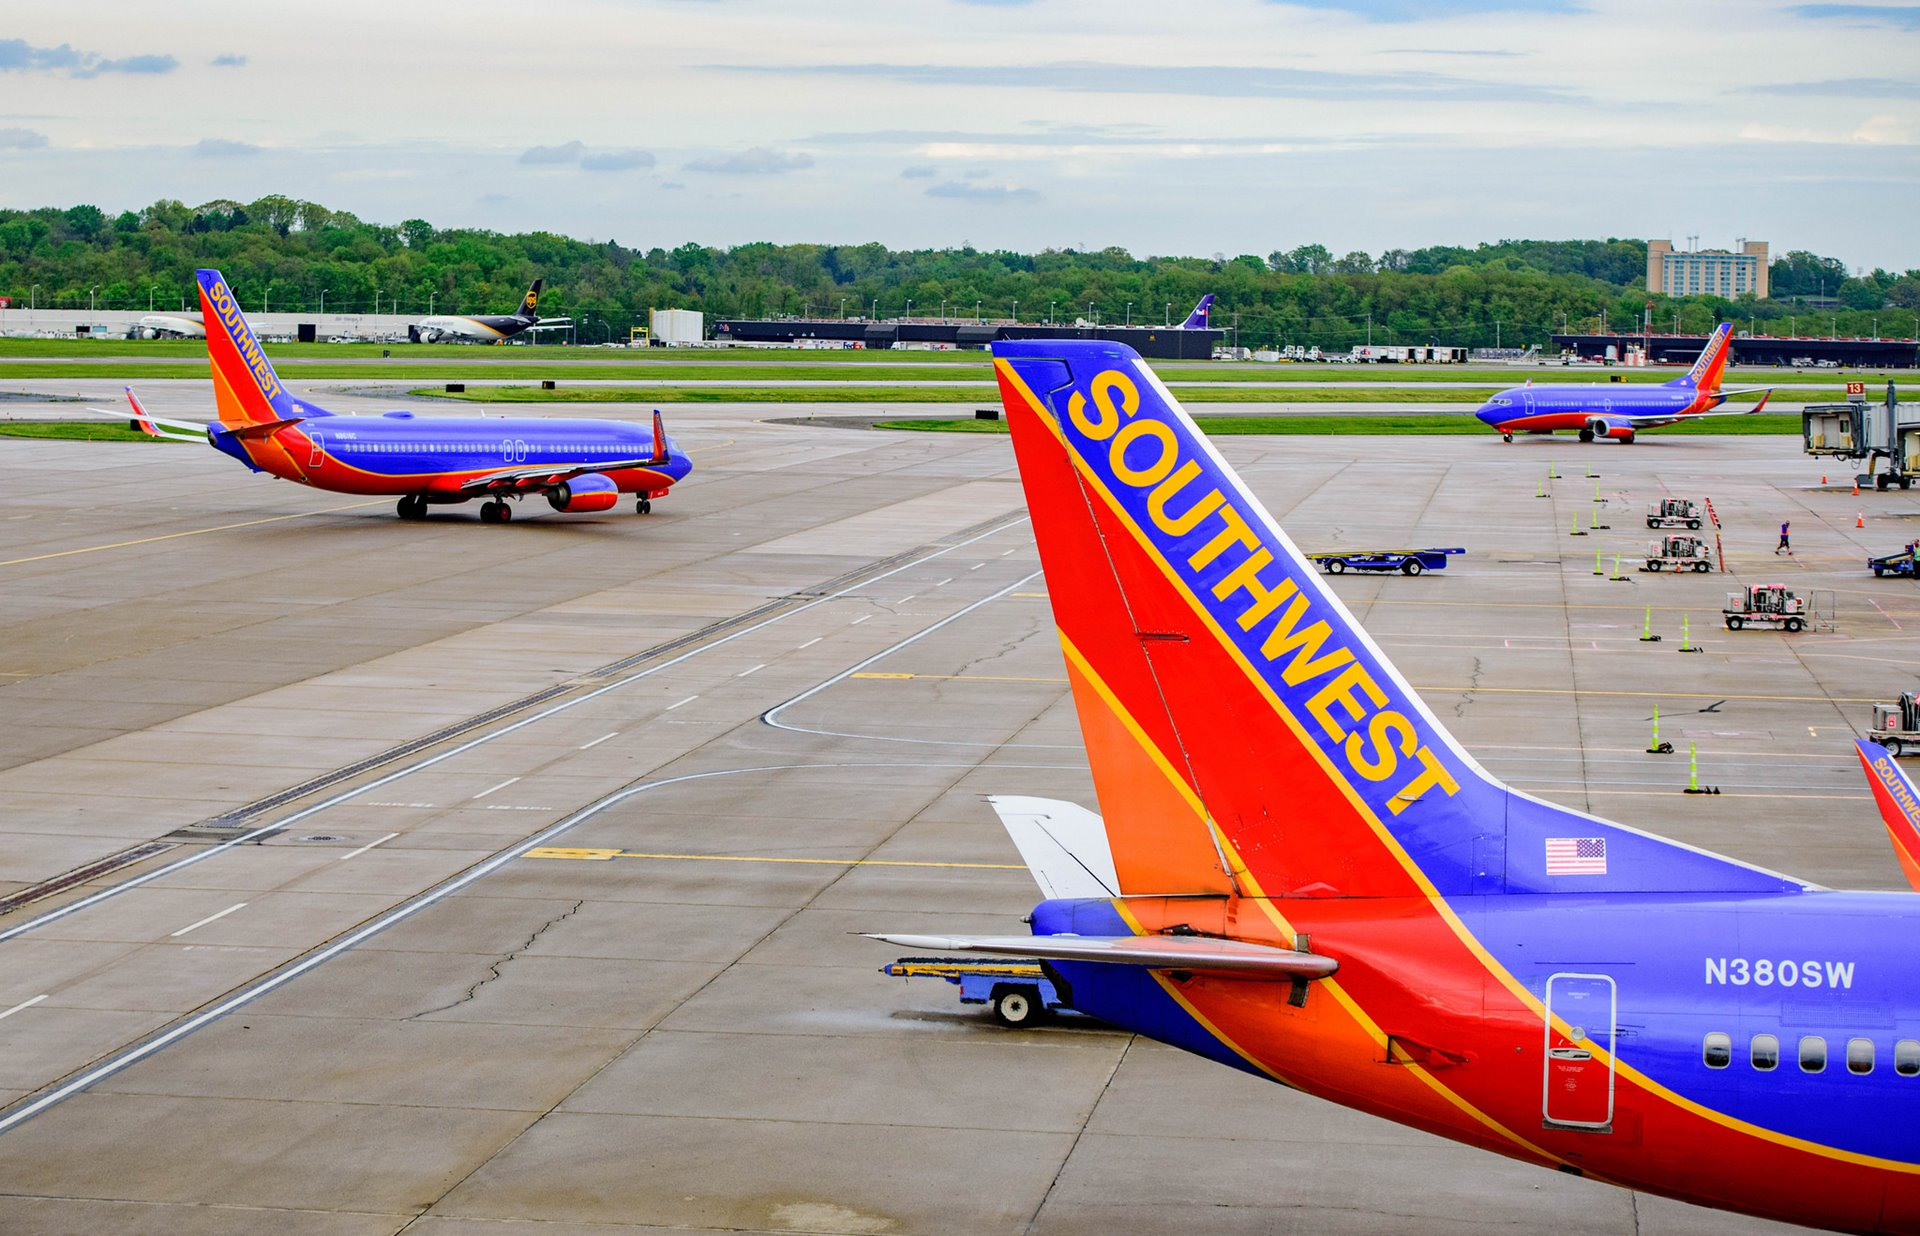 SOUTHWEST TO OPEN INTERNATIONAL GATEWAY AT PIT WITH NEW NONSTOP SERVICE TO CANCUN